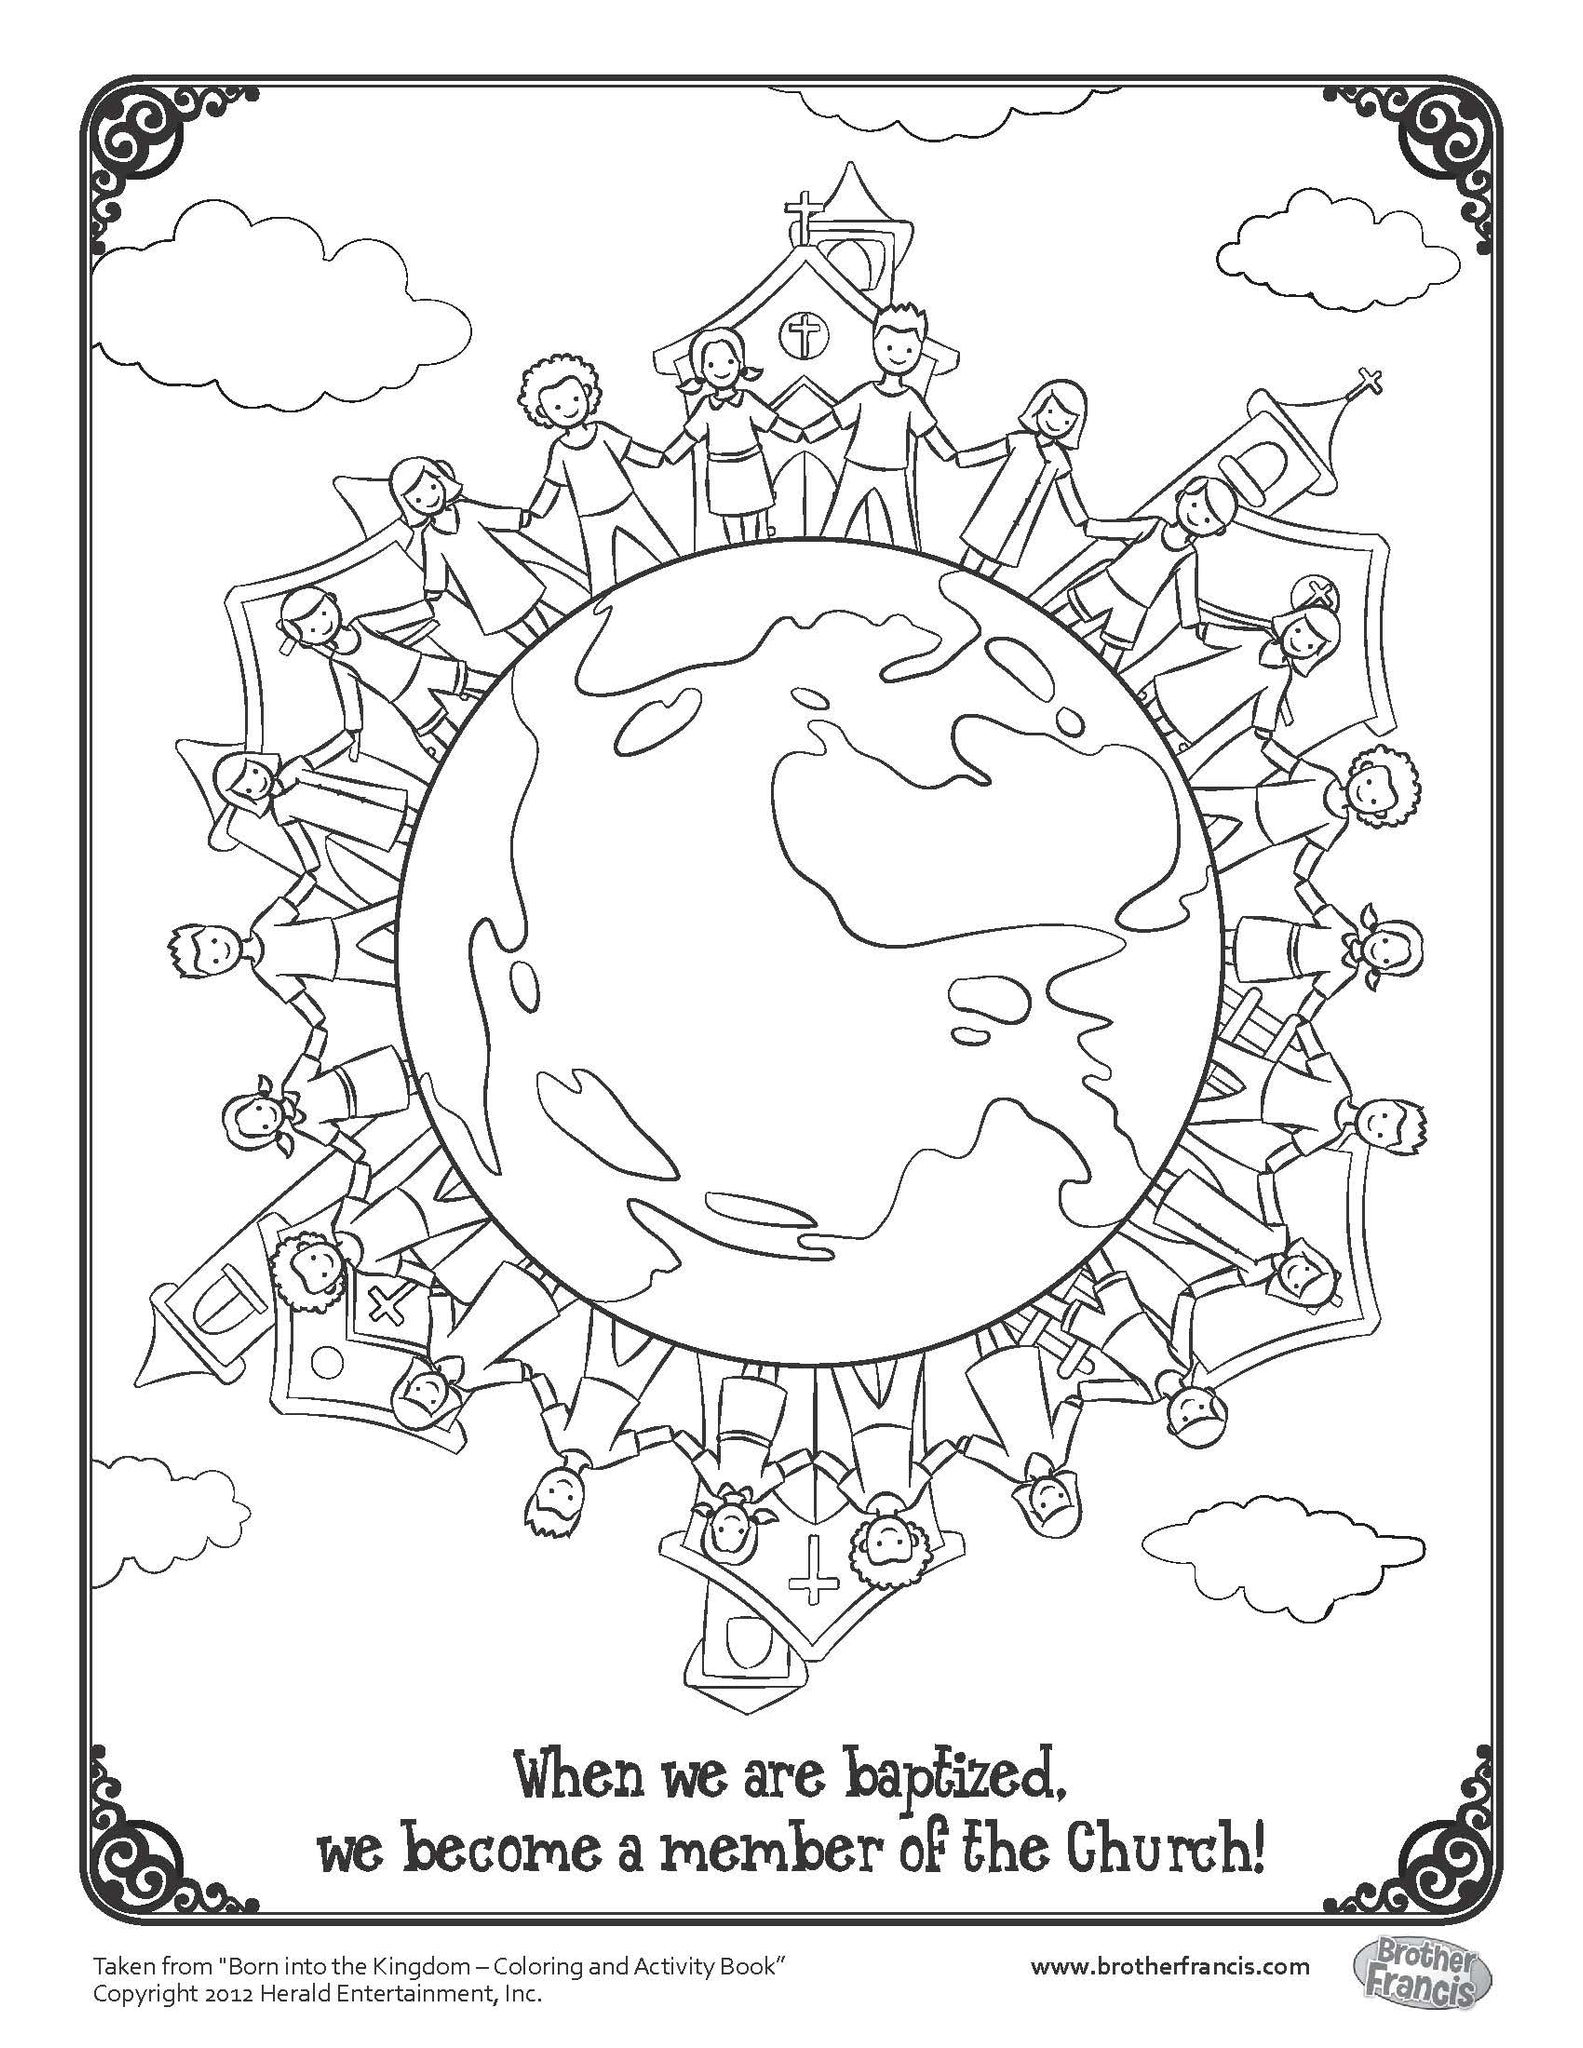 Download and Print - Baptism Coloring Page